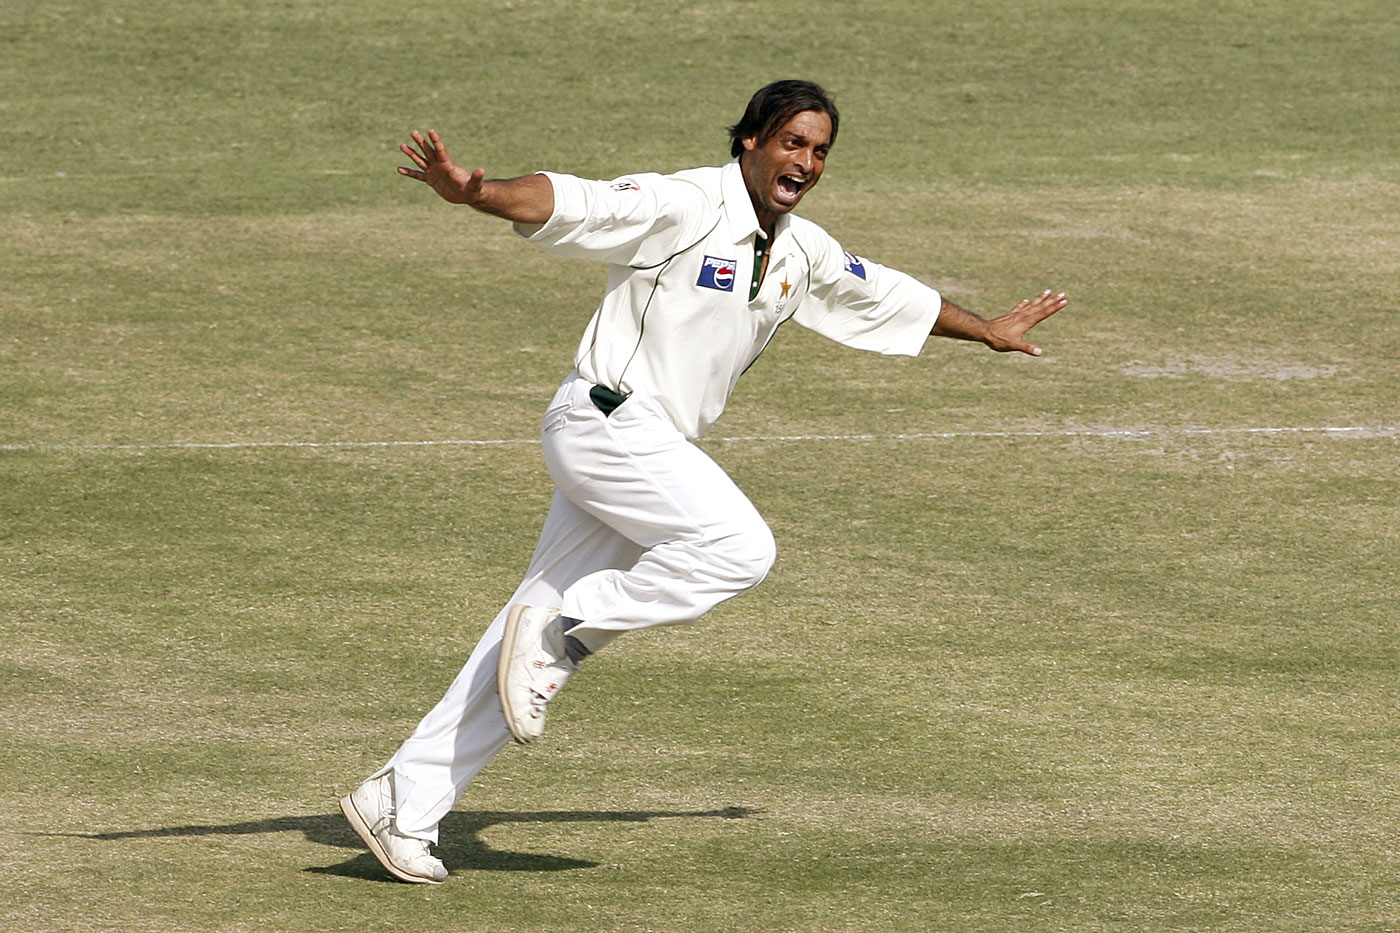 Pakistan Conquers England at Multan in 2005